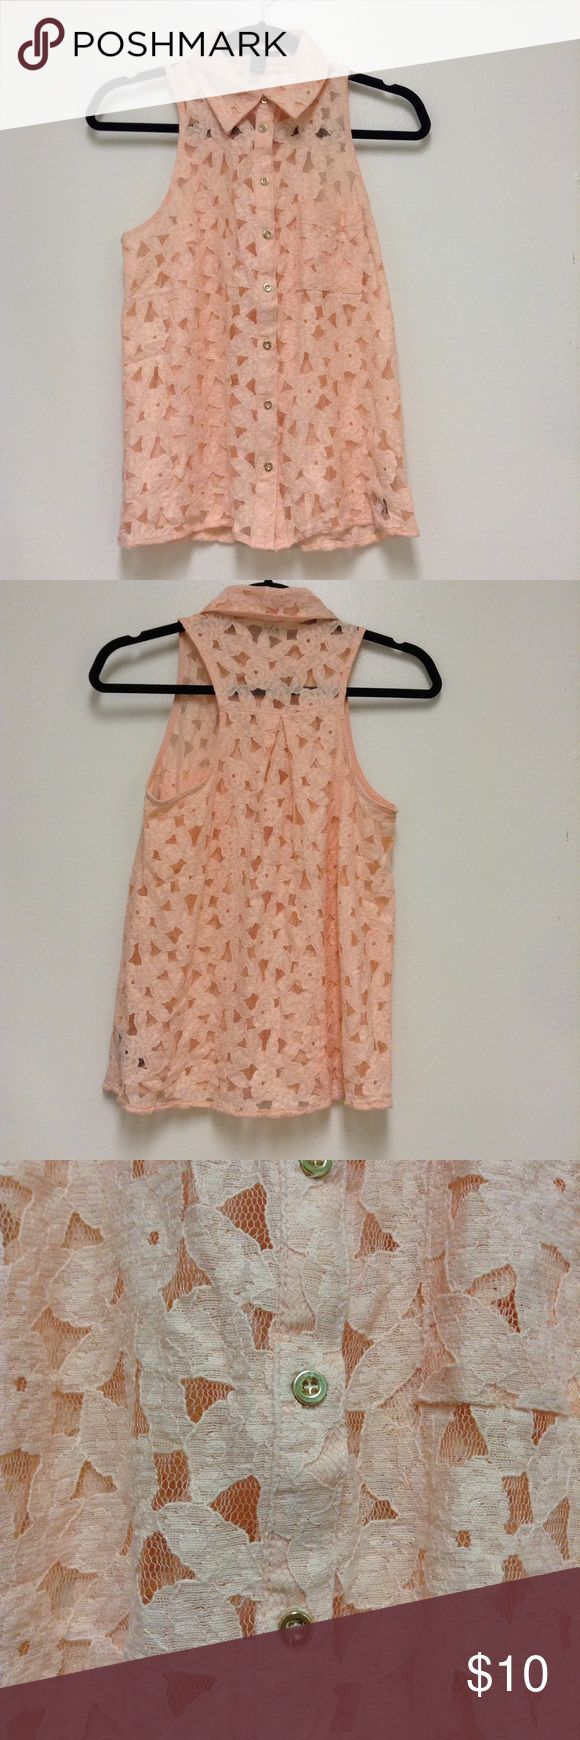 Forever 21 Peach Sleeveless Top Forever 21 Peach Sleeveless Top. Has gold colored buttons. The material is a peach Lace/Mesh made up of a floral design. The back is cut like a razorback. It is see through. Worn twice. Forever 21 Tops Button Down Shirts